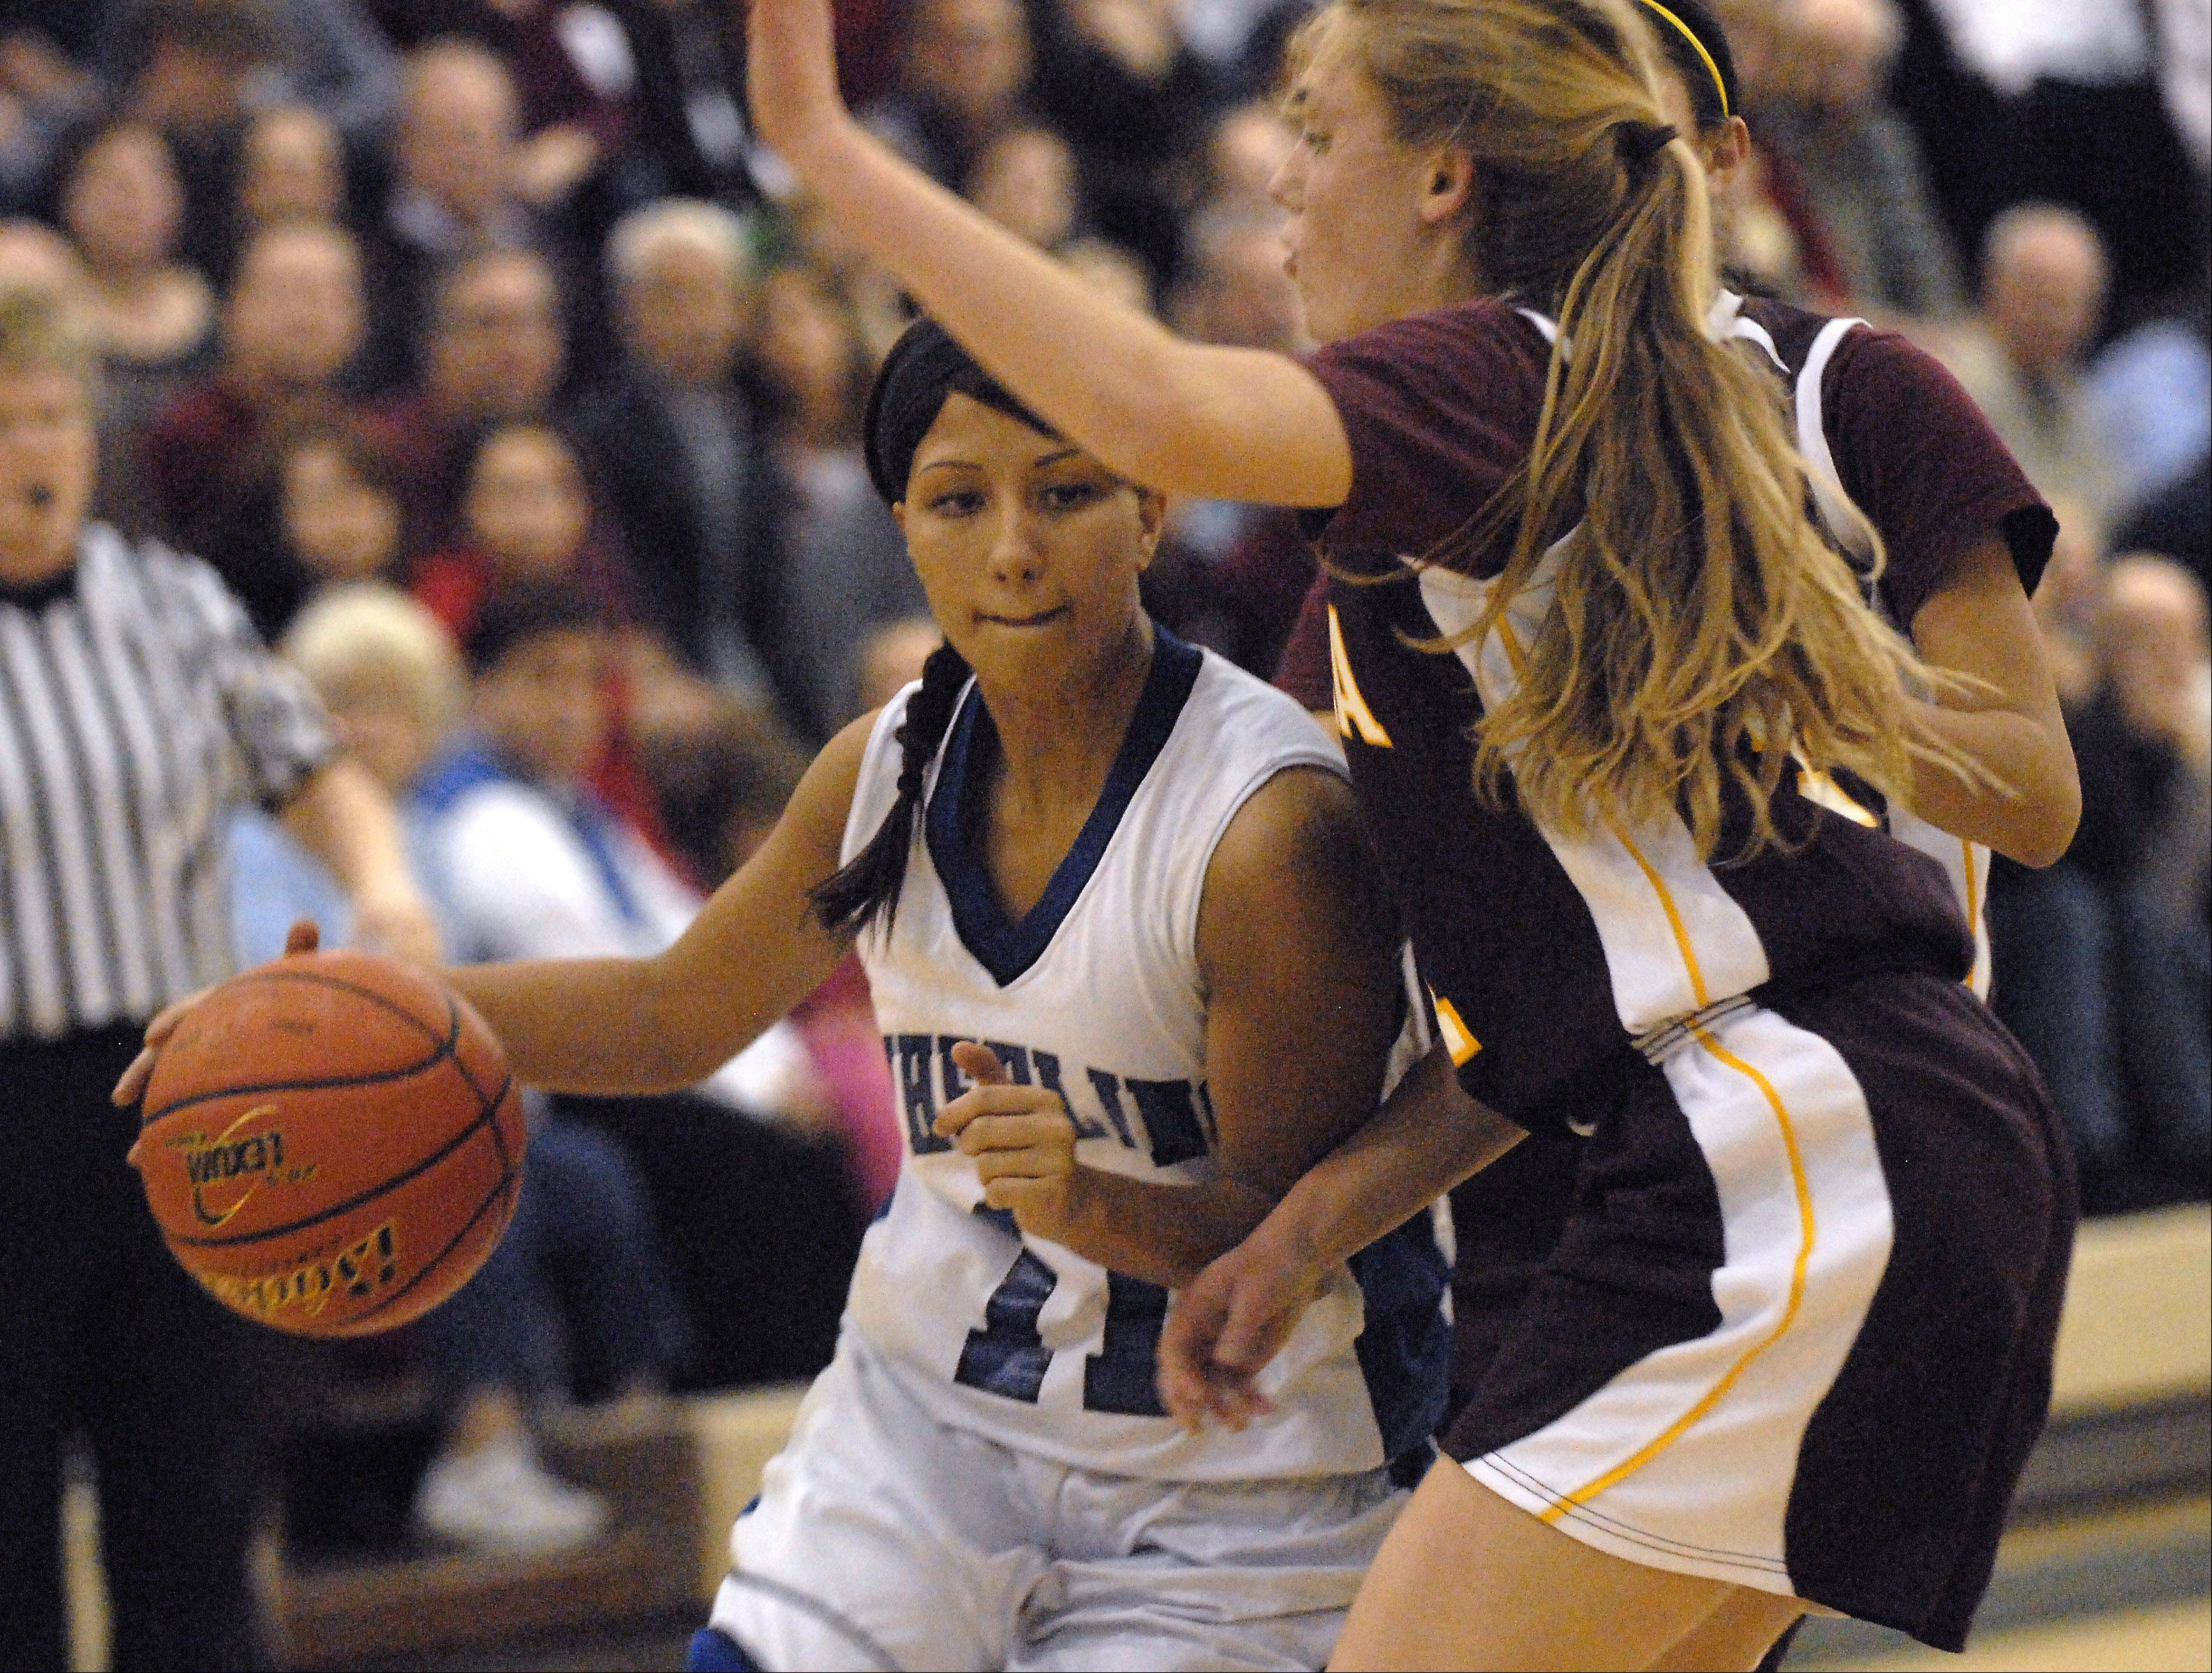 Images: Wheeling vs Loyola Academy, girls 4A supersectional basketball